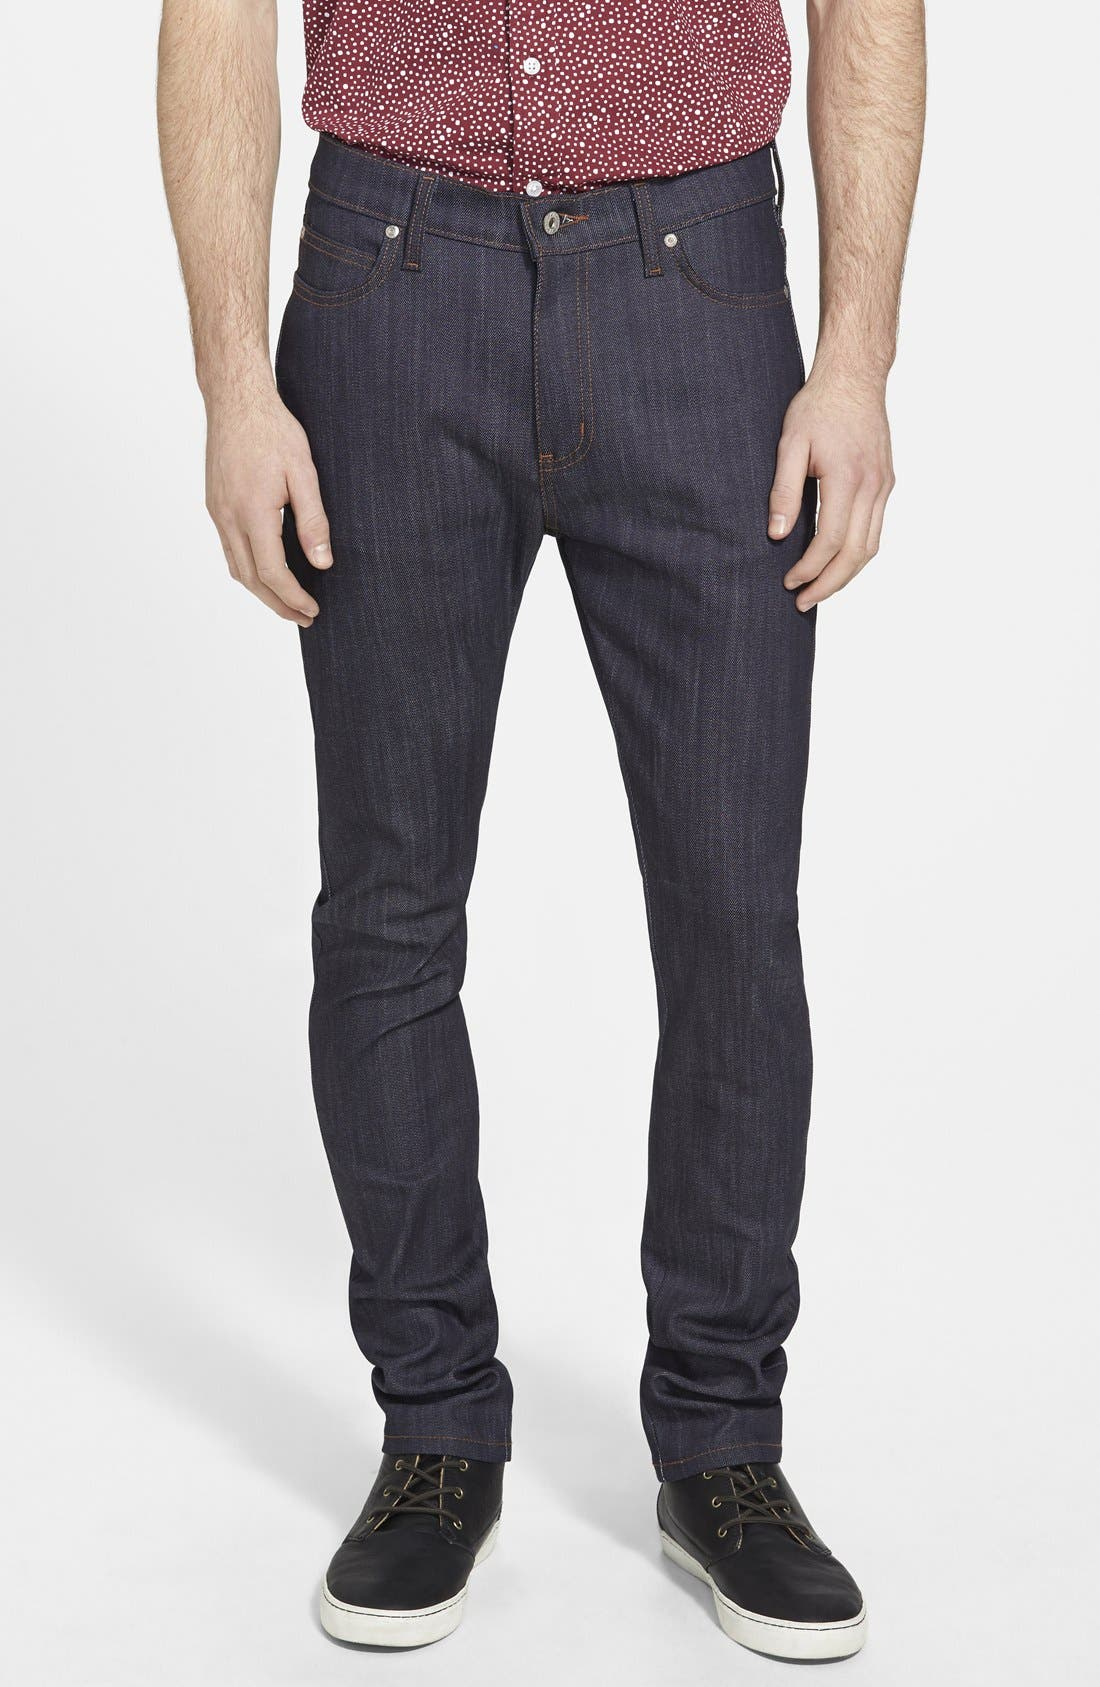 'Stacked Guy' Skinny Fit Jeans,                             Main thumbnail 1, color,                             401